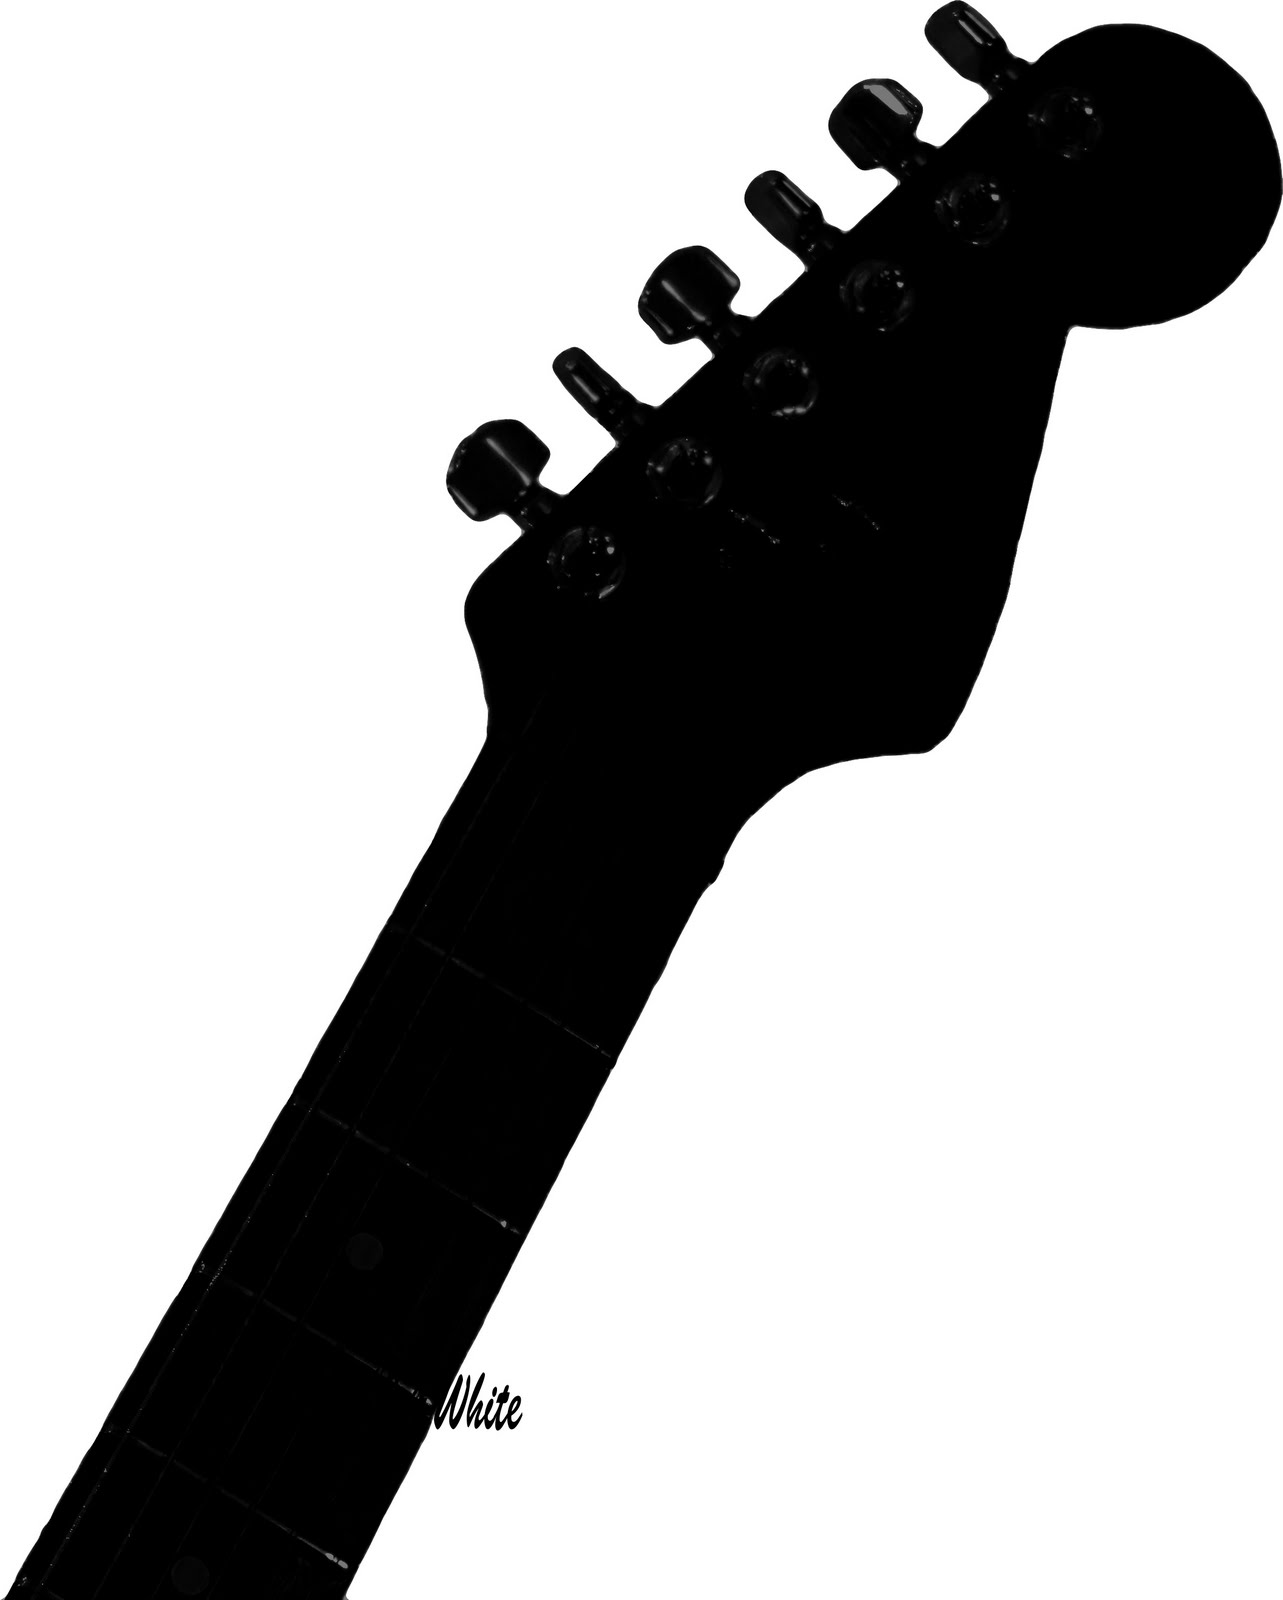 Guitar neck clipart.